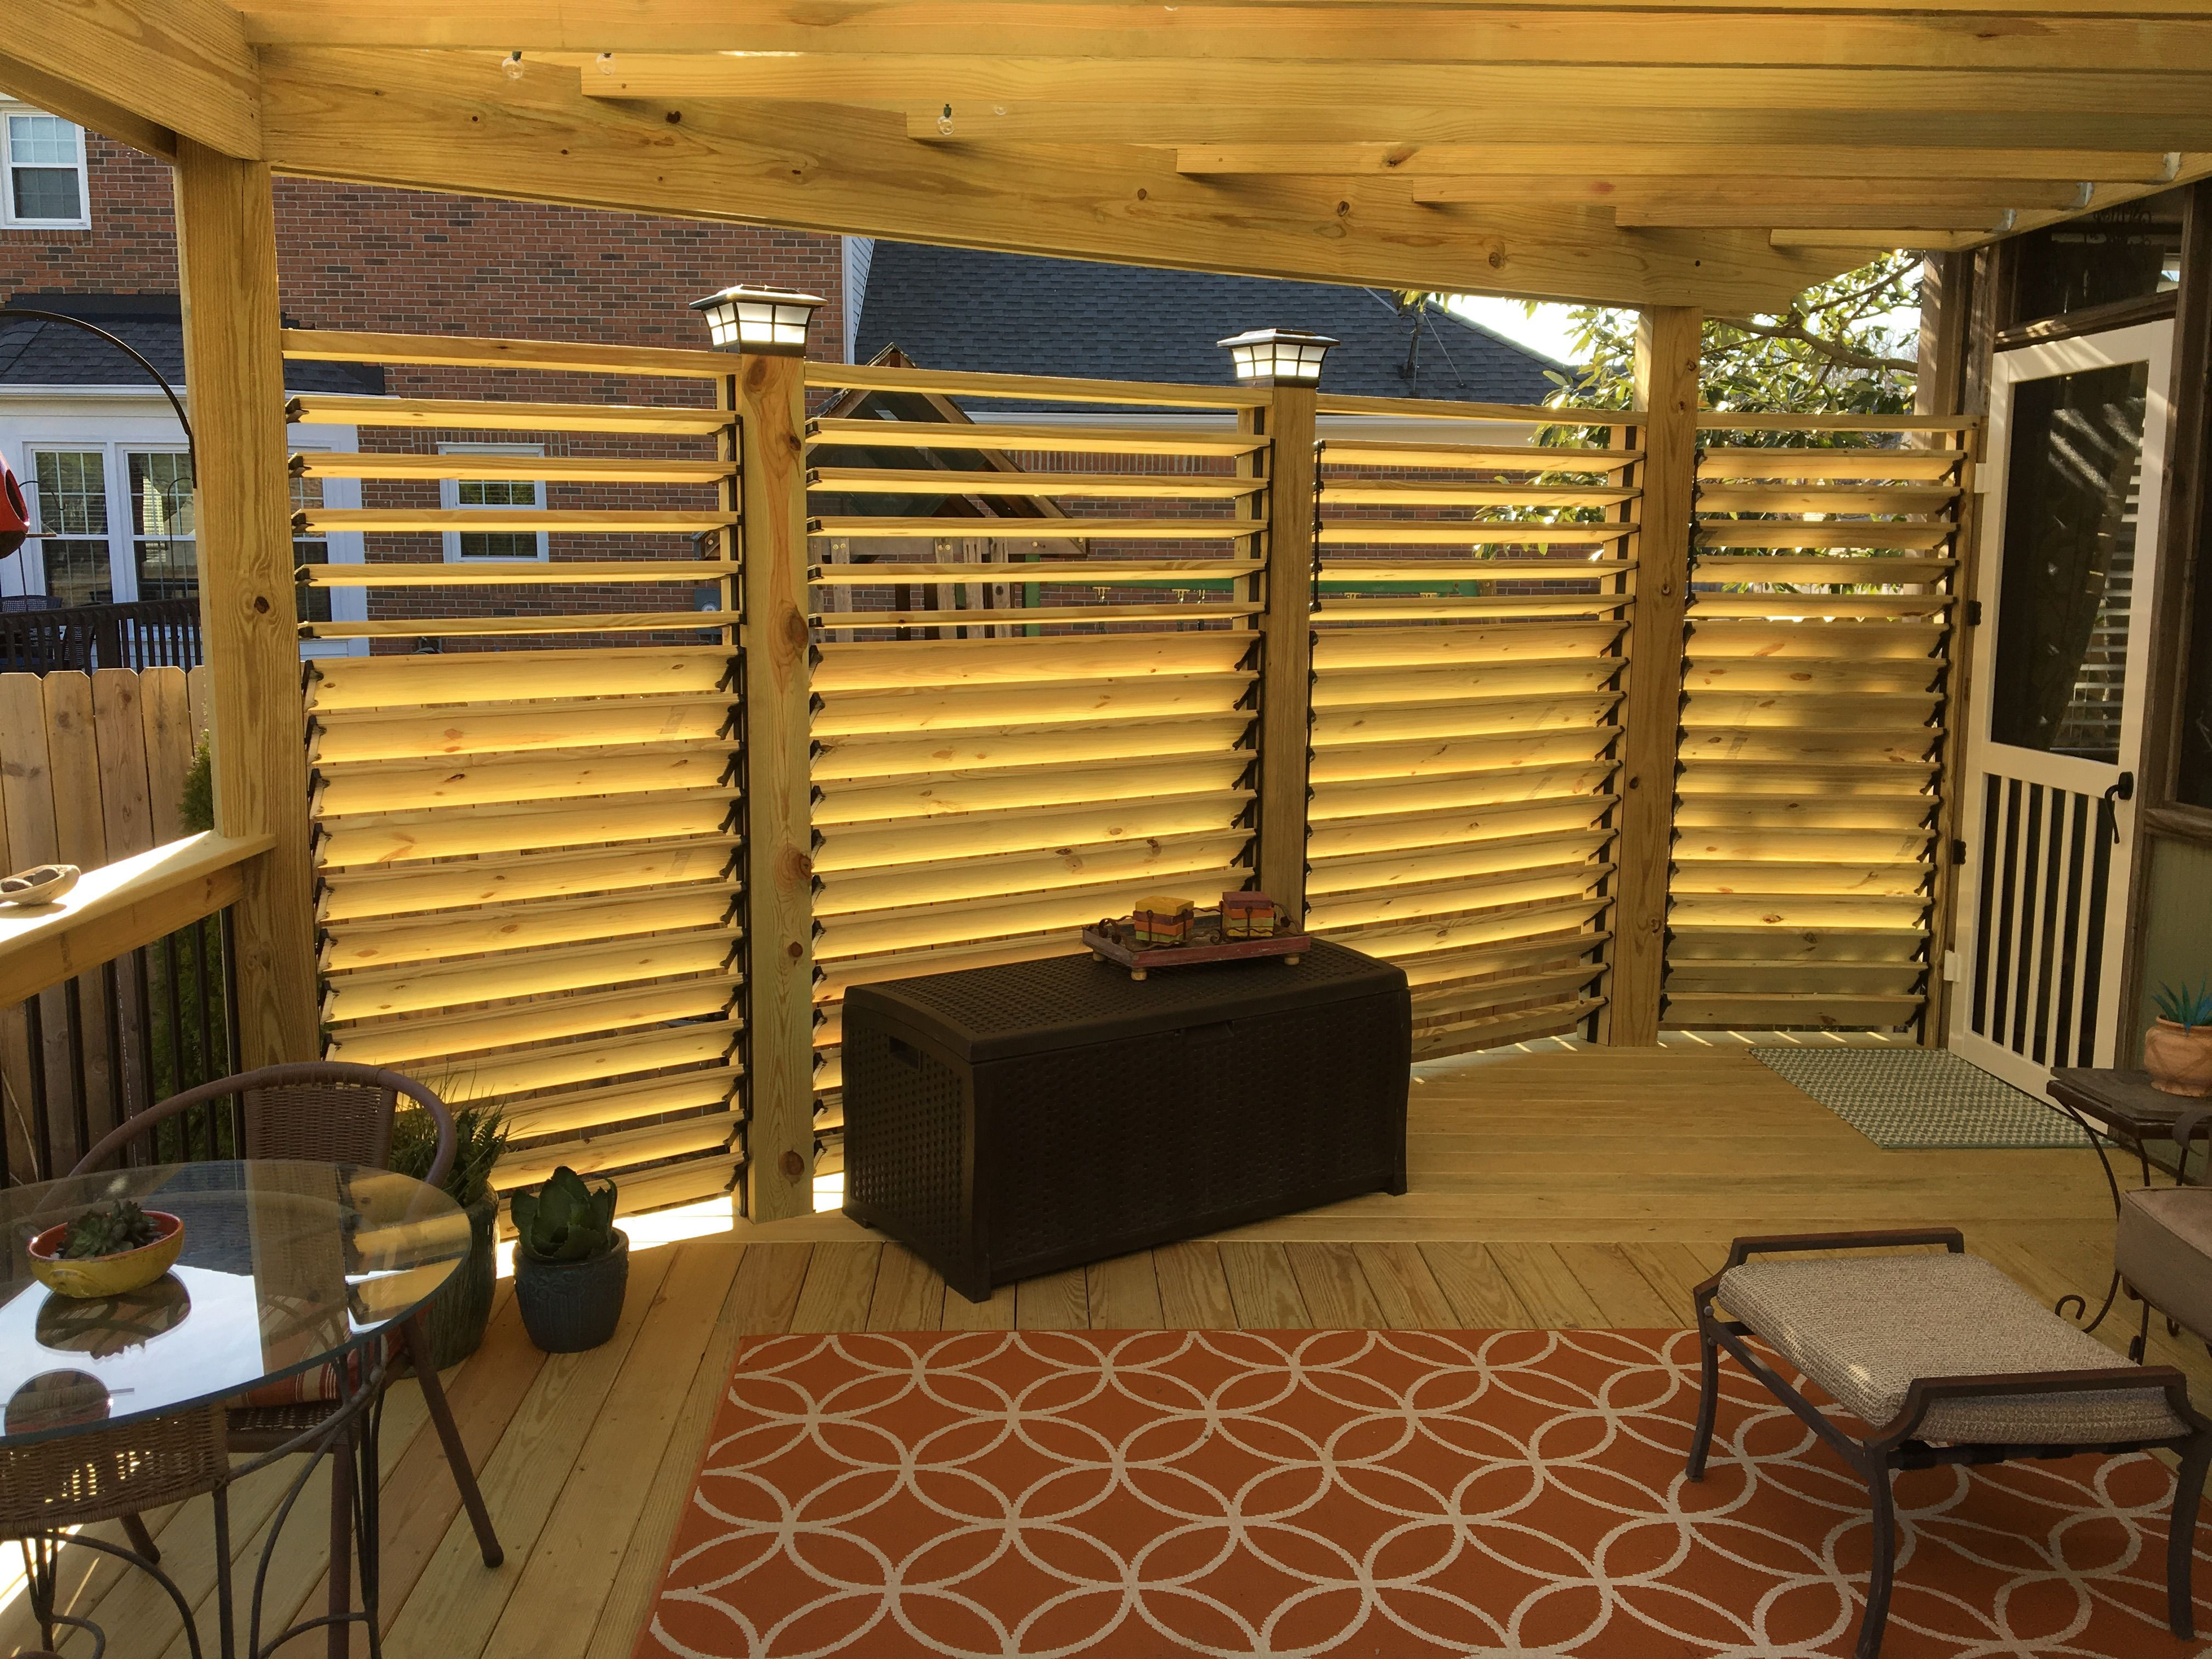 178 best creative backyard fence ideas images on pinterest | fence